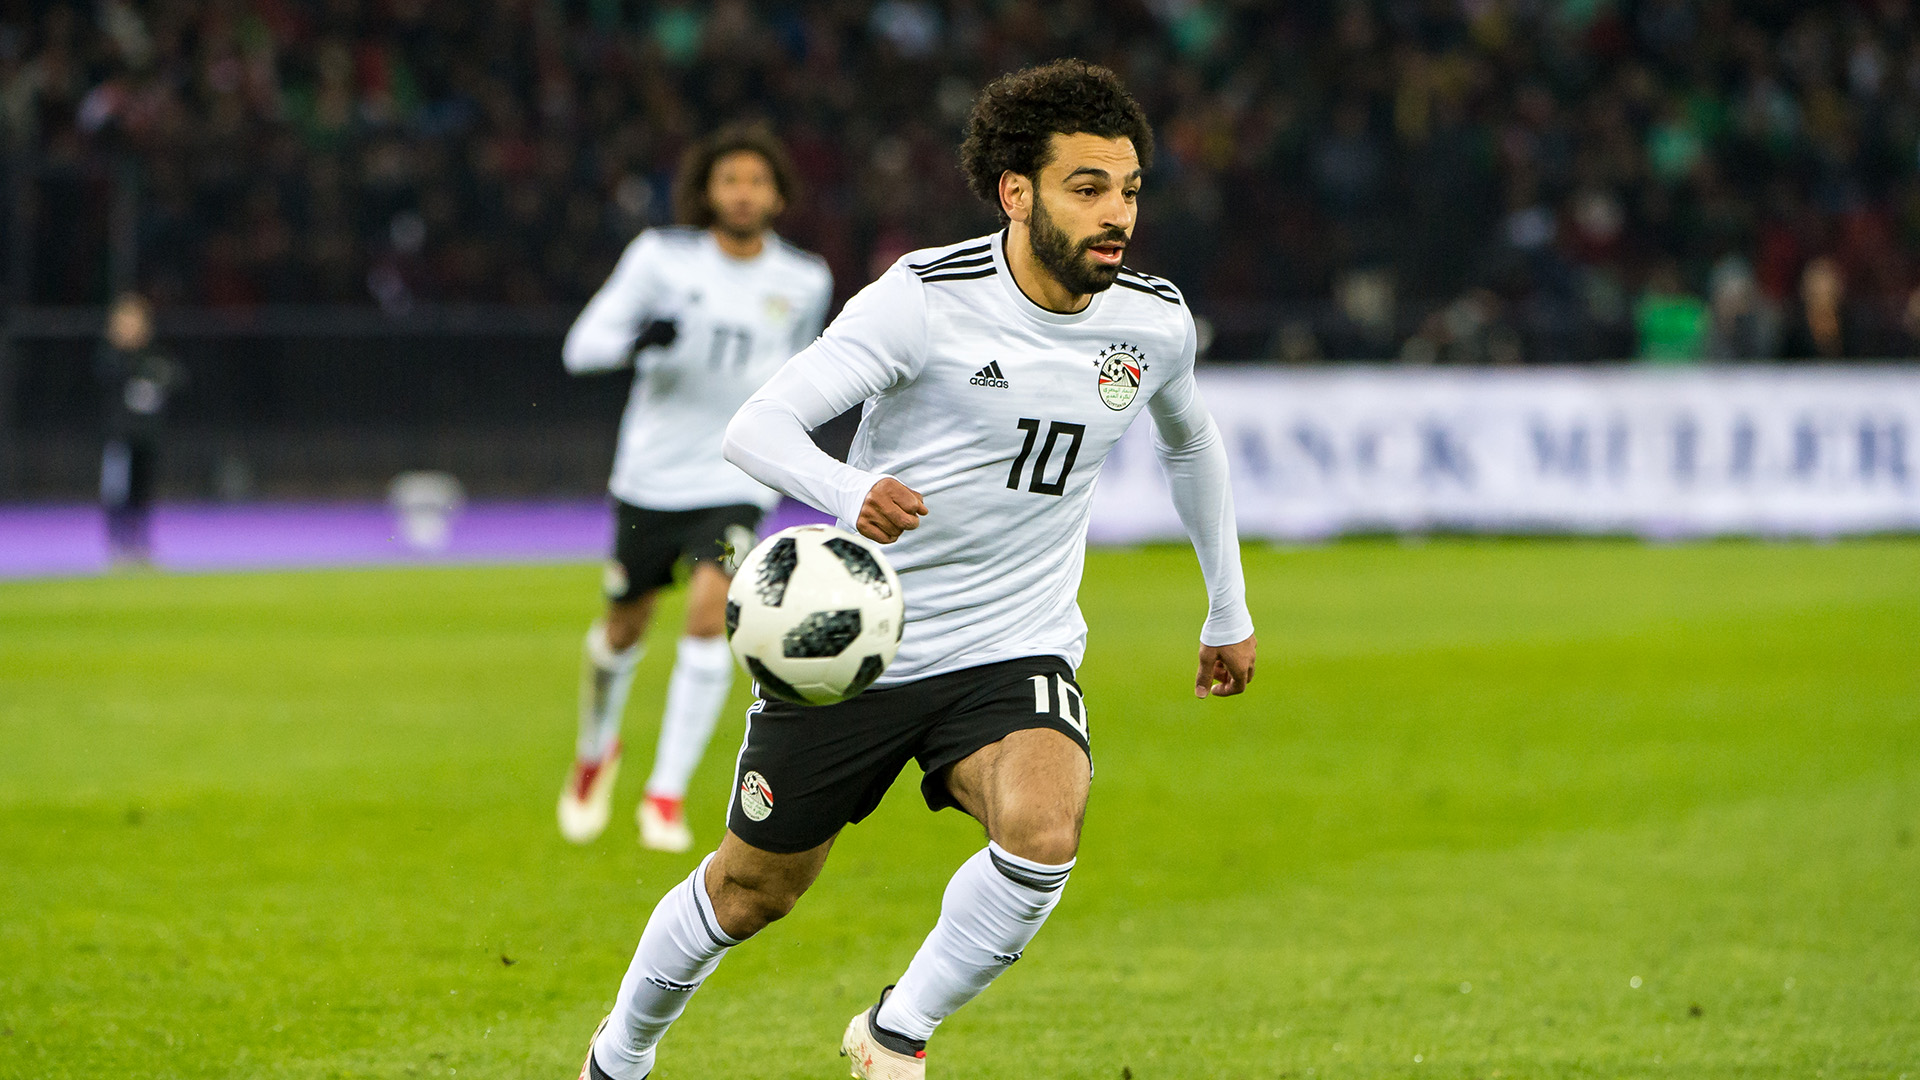 Salah confirmed fit for Uruguay tie